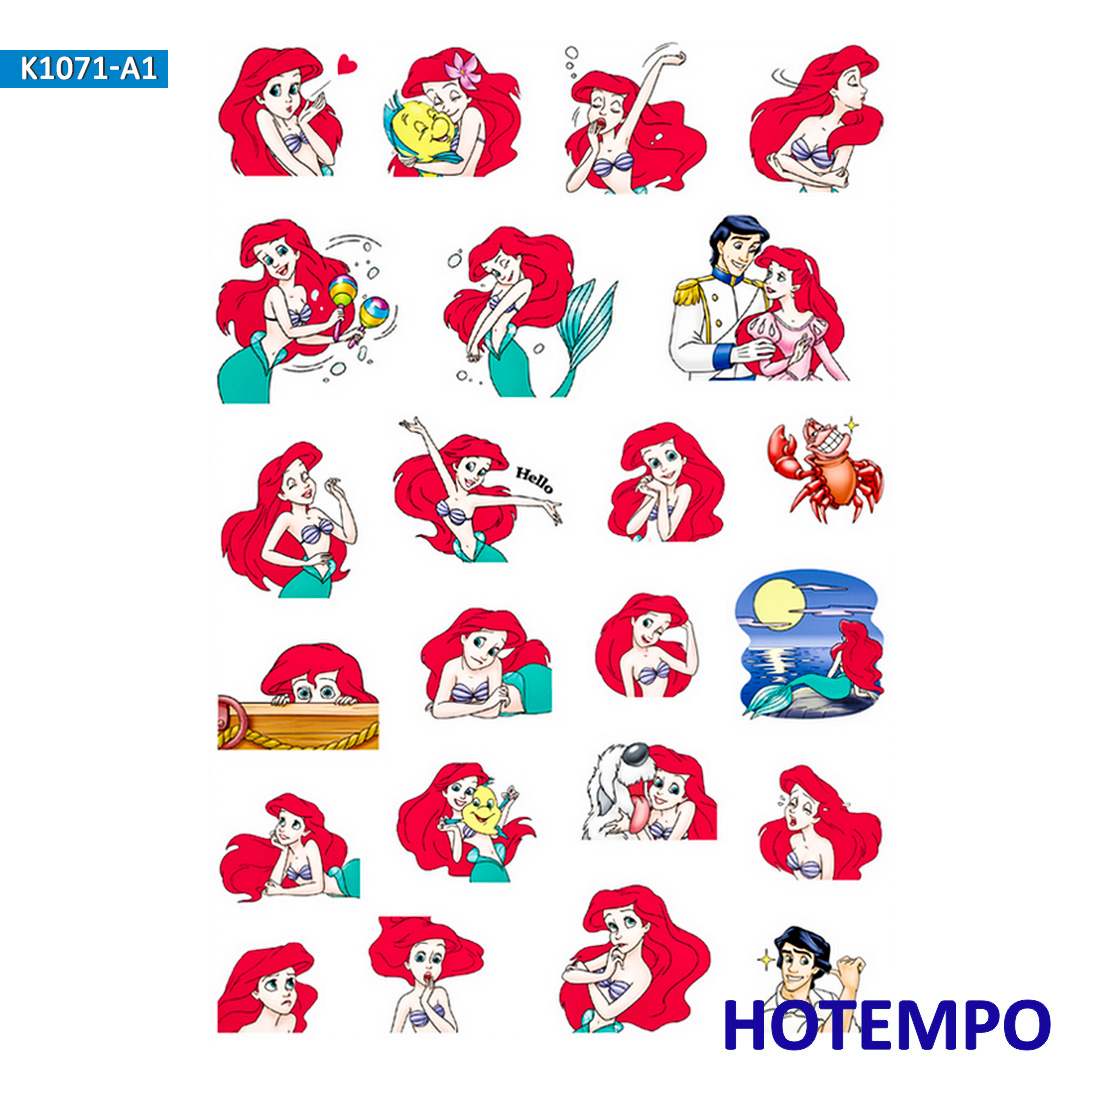 Mermaid Princess Ariel Cartoon Stickers For Children DIY Letter Diary Scrapbooking Stationery Pegatinas Stickers